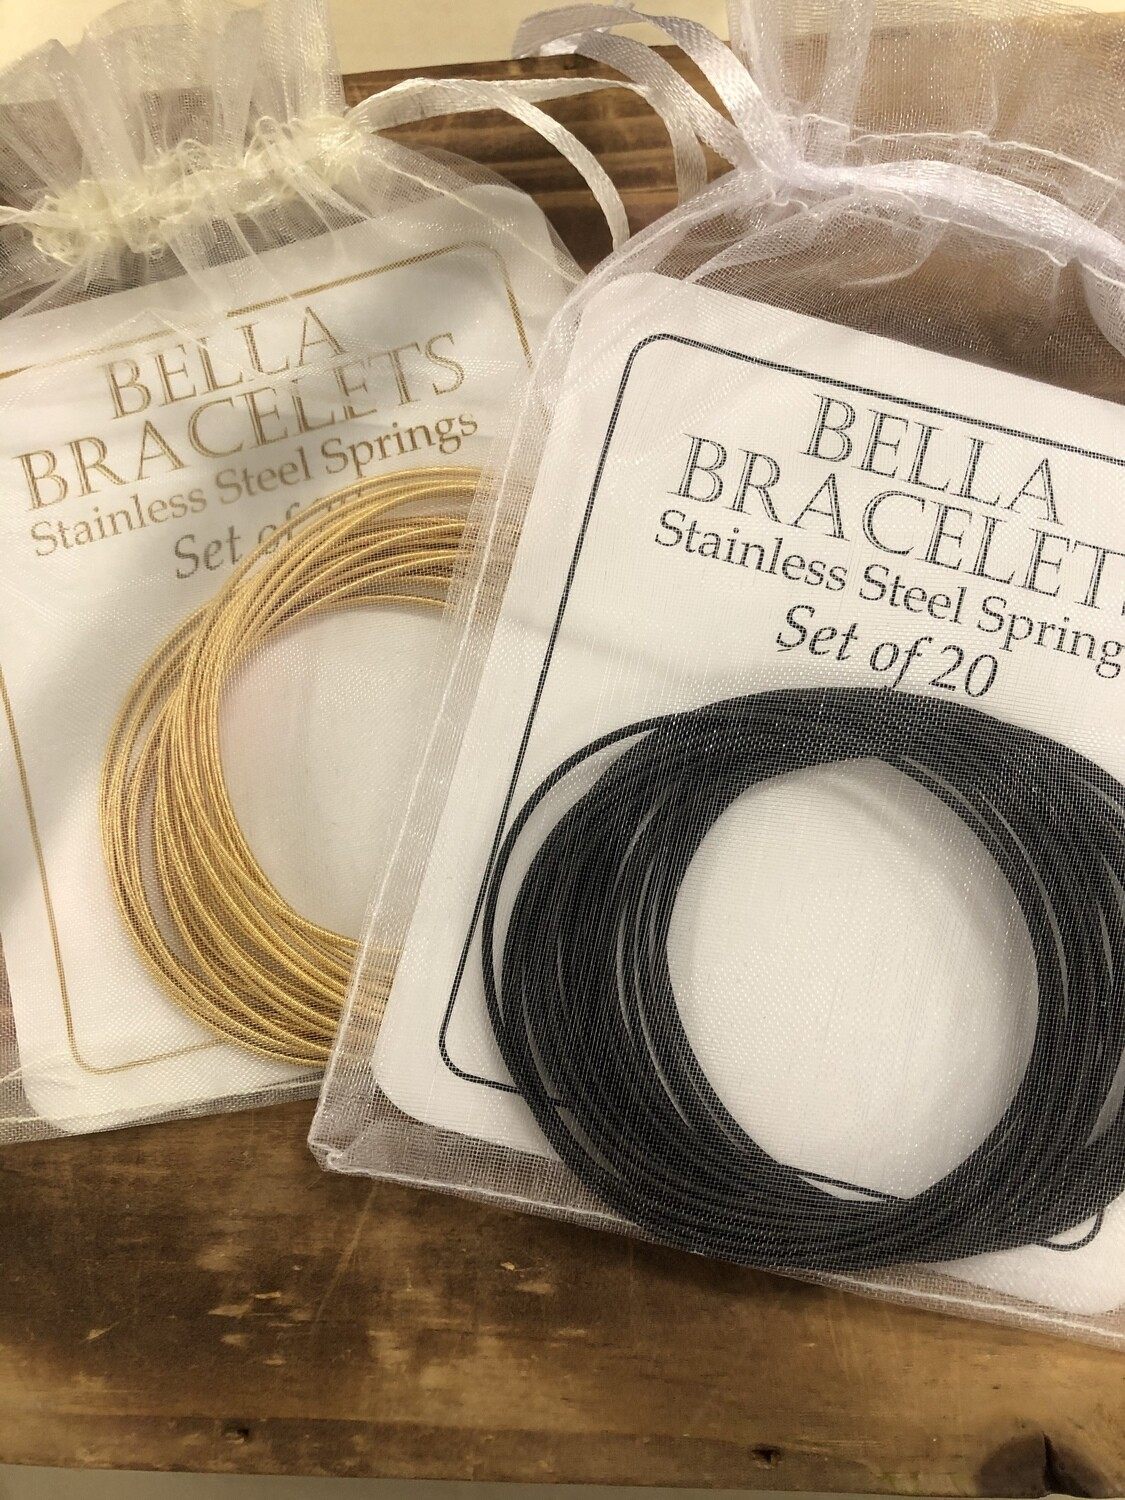 Bella Stainless Steel Set/20 Bracelet